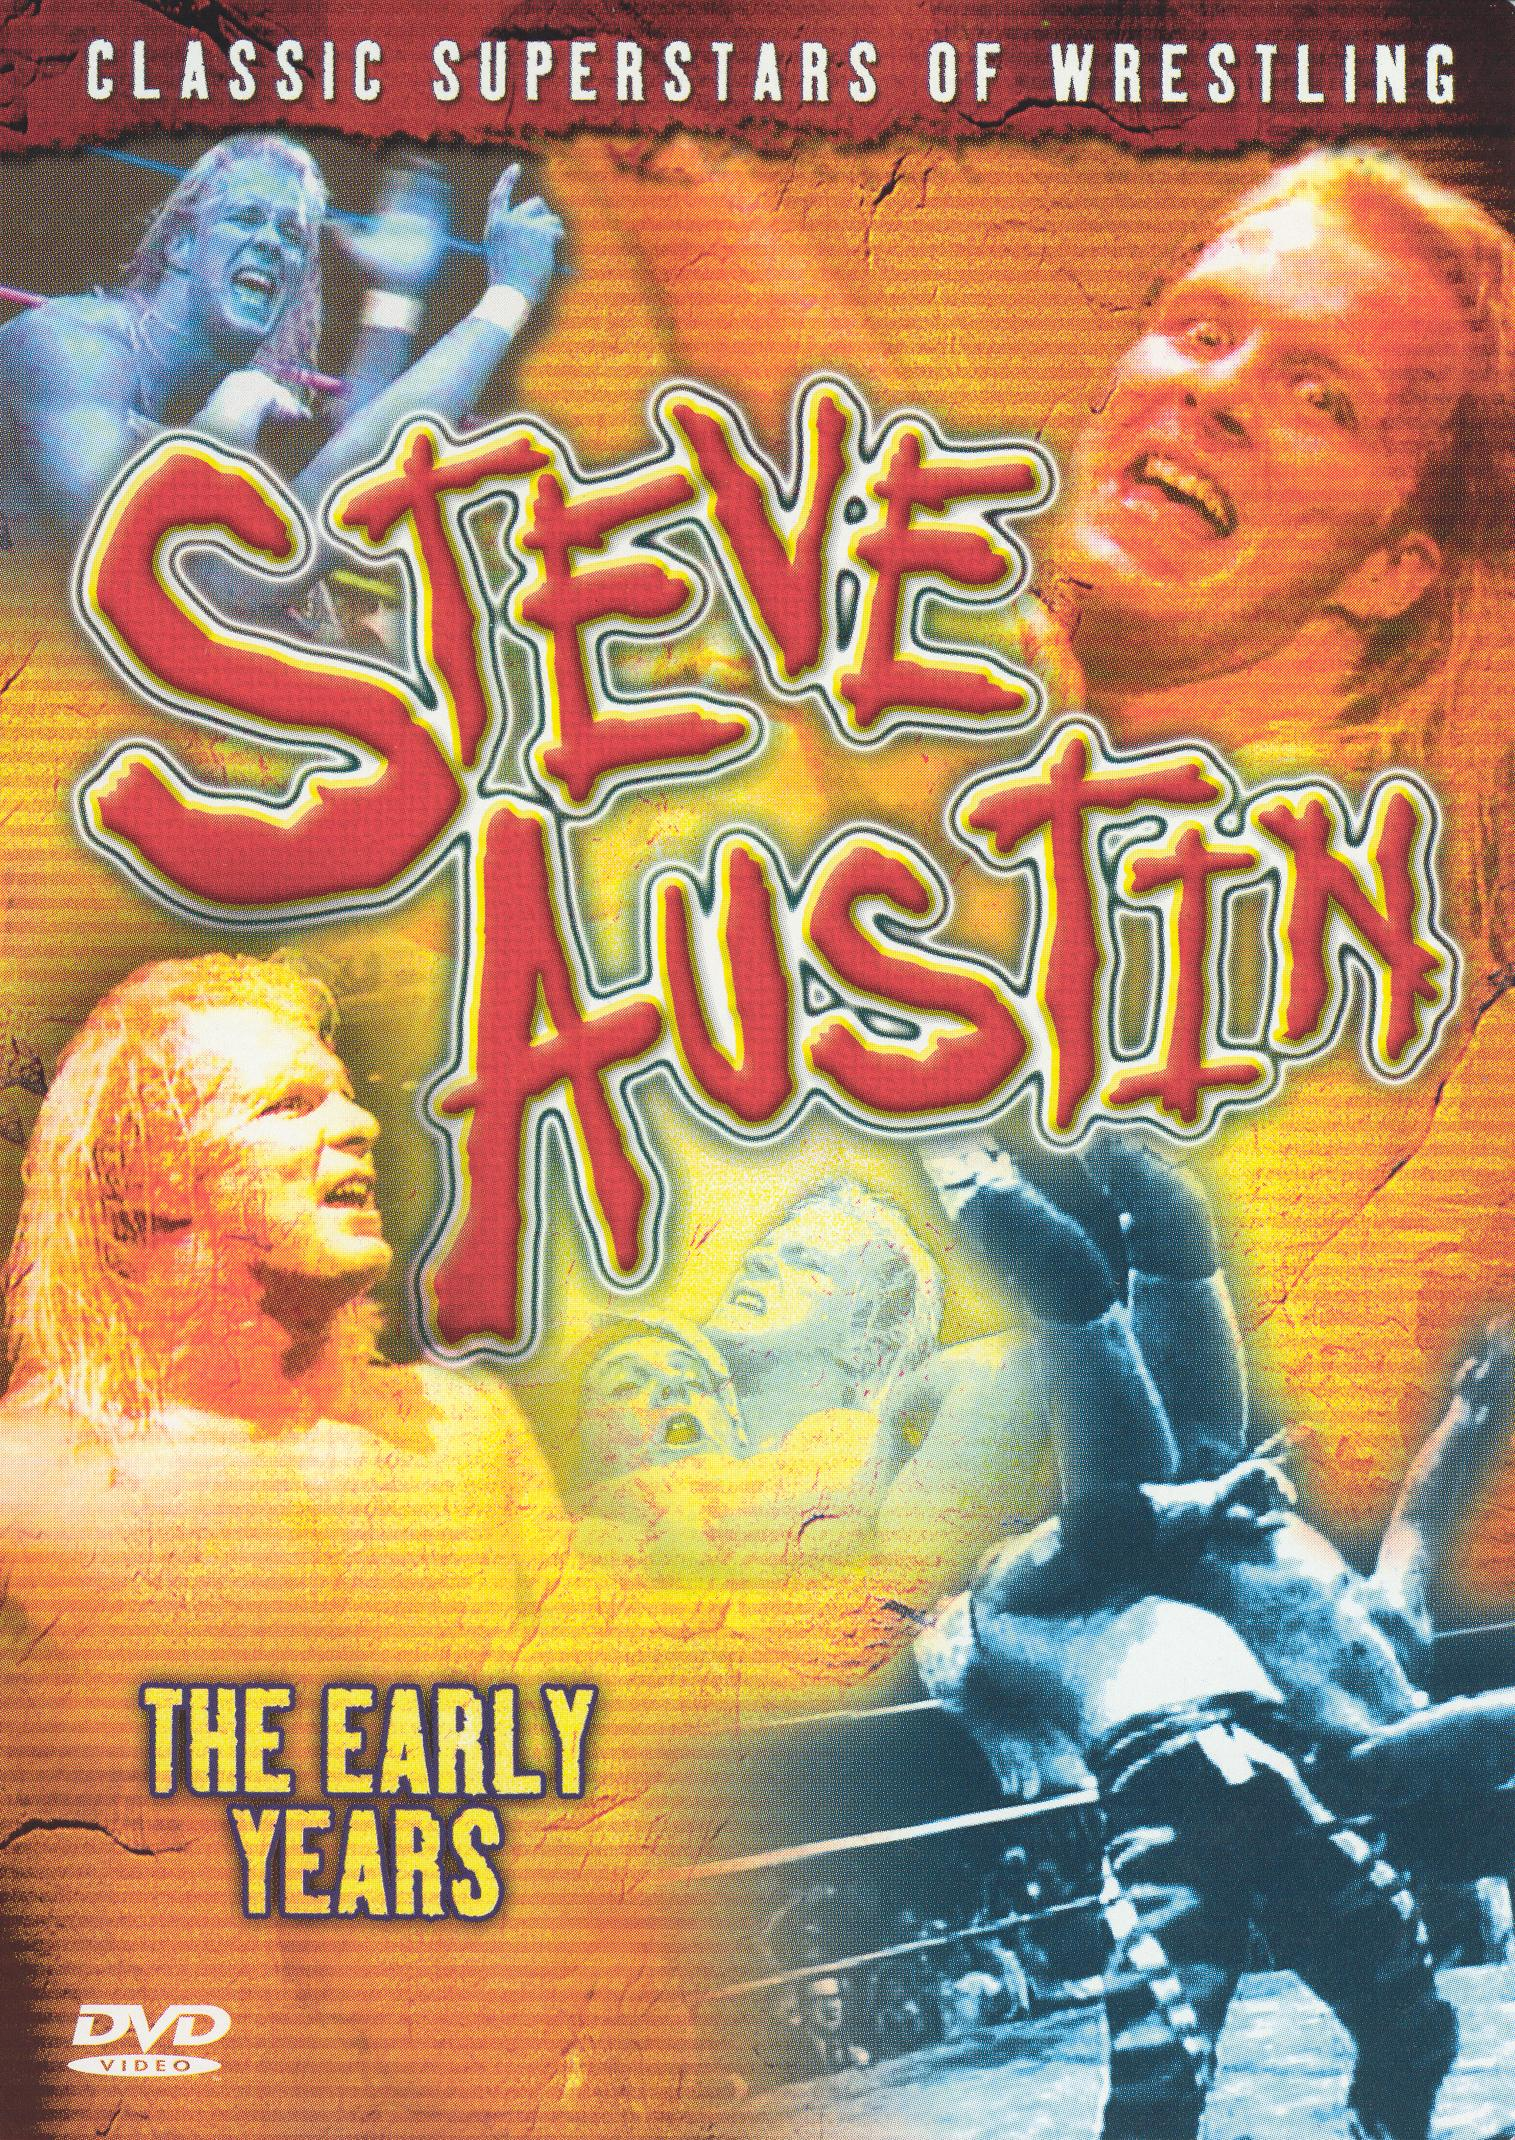 Classic Superstars of Wrestling: Steve Austin - The Early Years